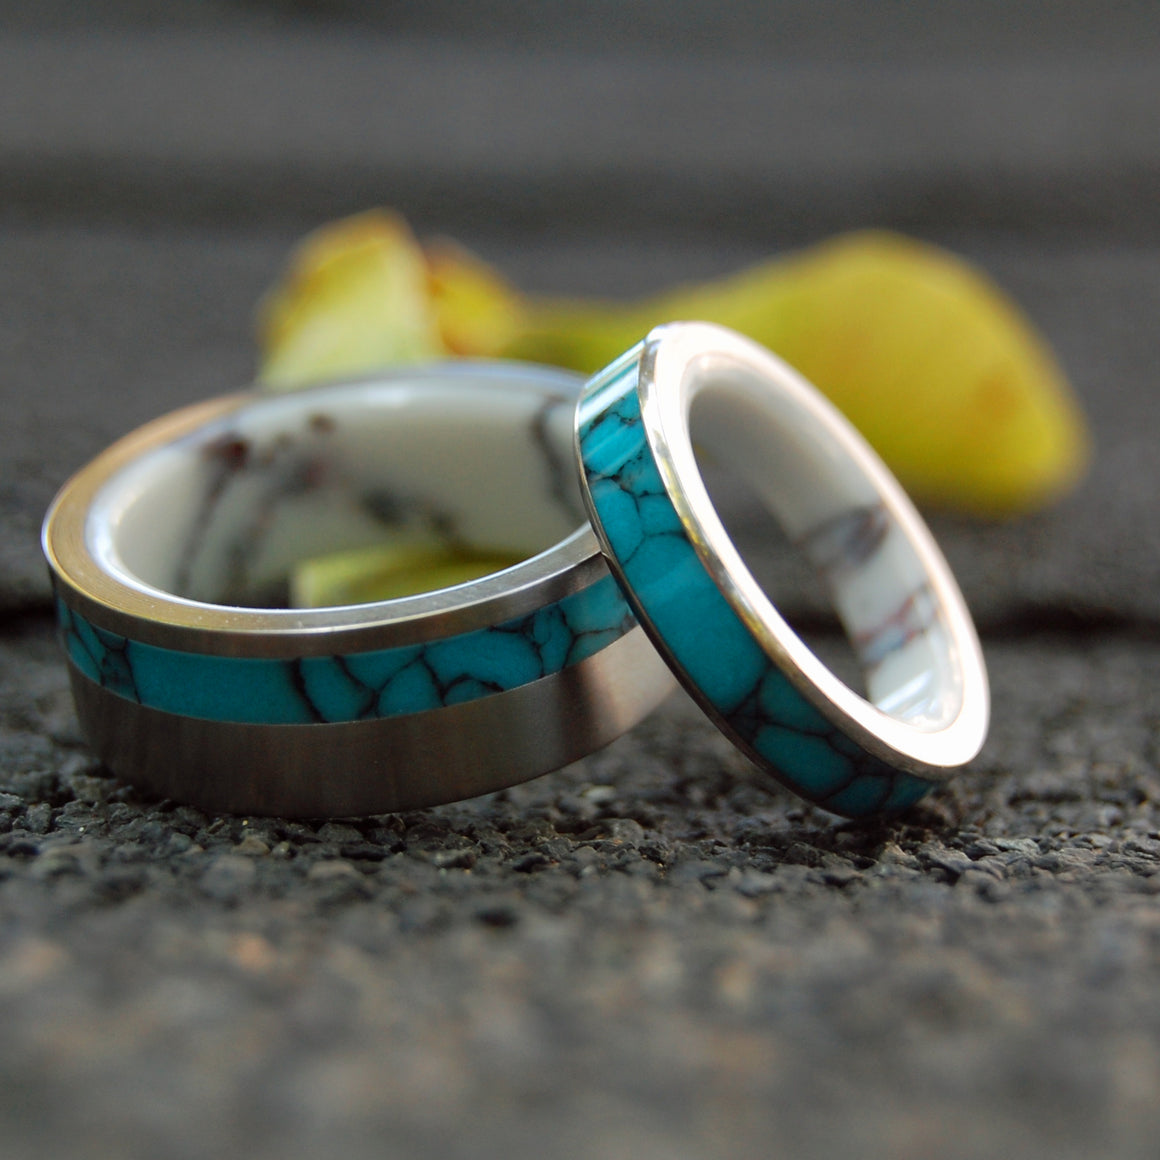 LIFETIME & BLUE MOON | Turquoise Stone & Wild Horse Jasper Stone - Unique Wedding Rings Set - Minter and Richter Designs